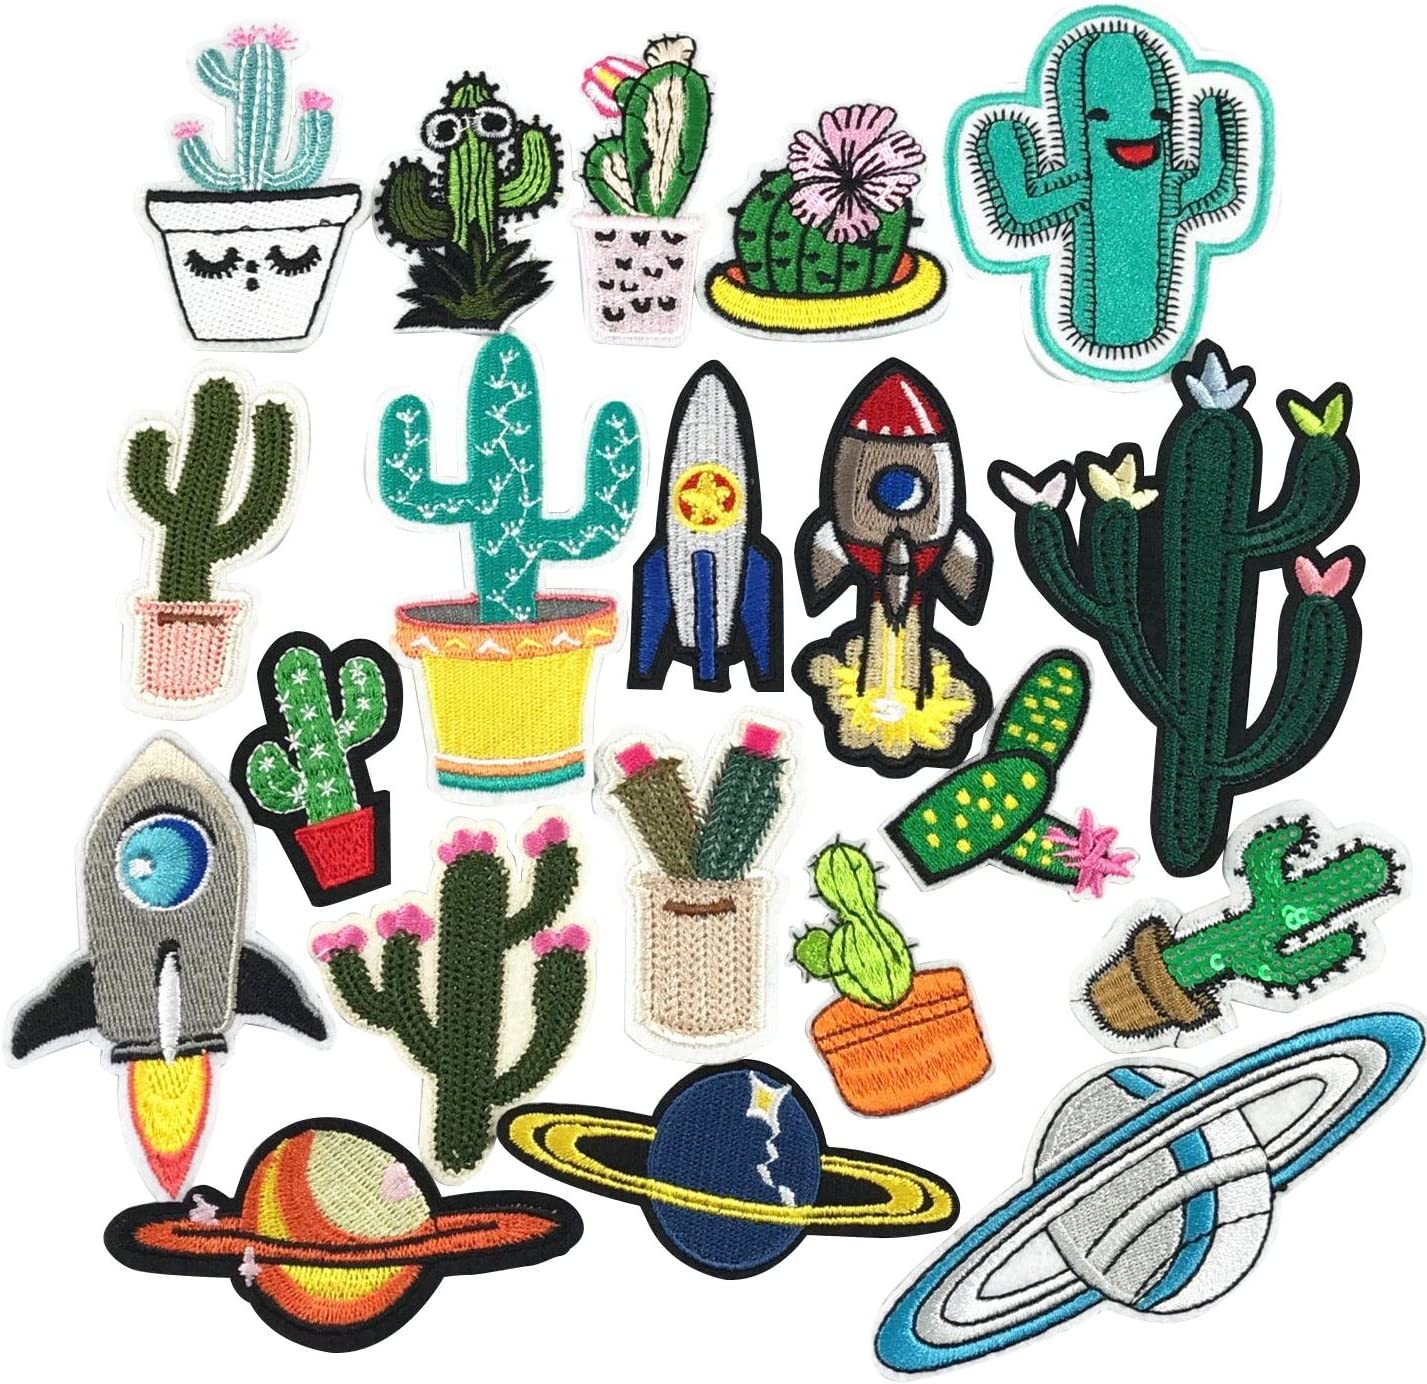 YAKA 20pcs Assorted Iron Embroidery Patches Cactus Kits, Embroidery Applique Sewing for Jackets Dress Hat Vest Jeans Backpacks Clothes, Decoration Applique Patch DIY Accessory Cactus